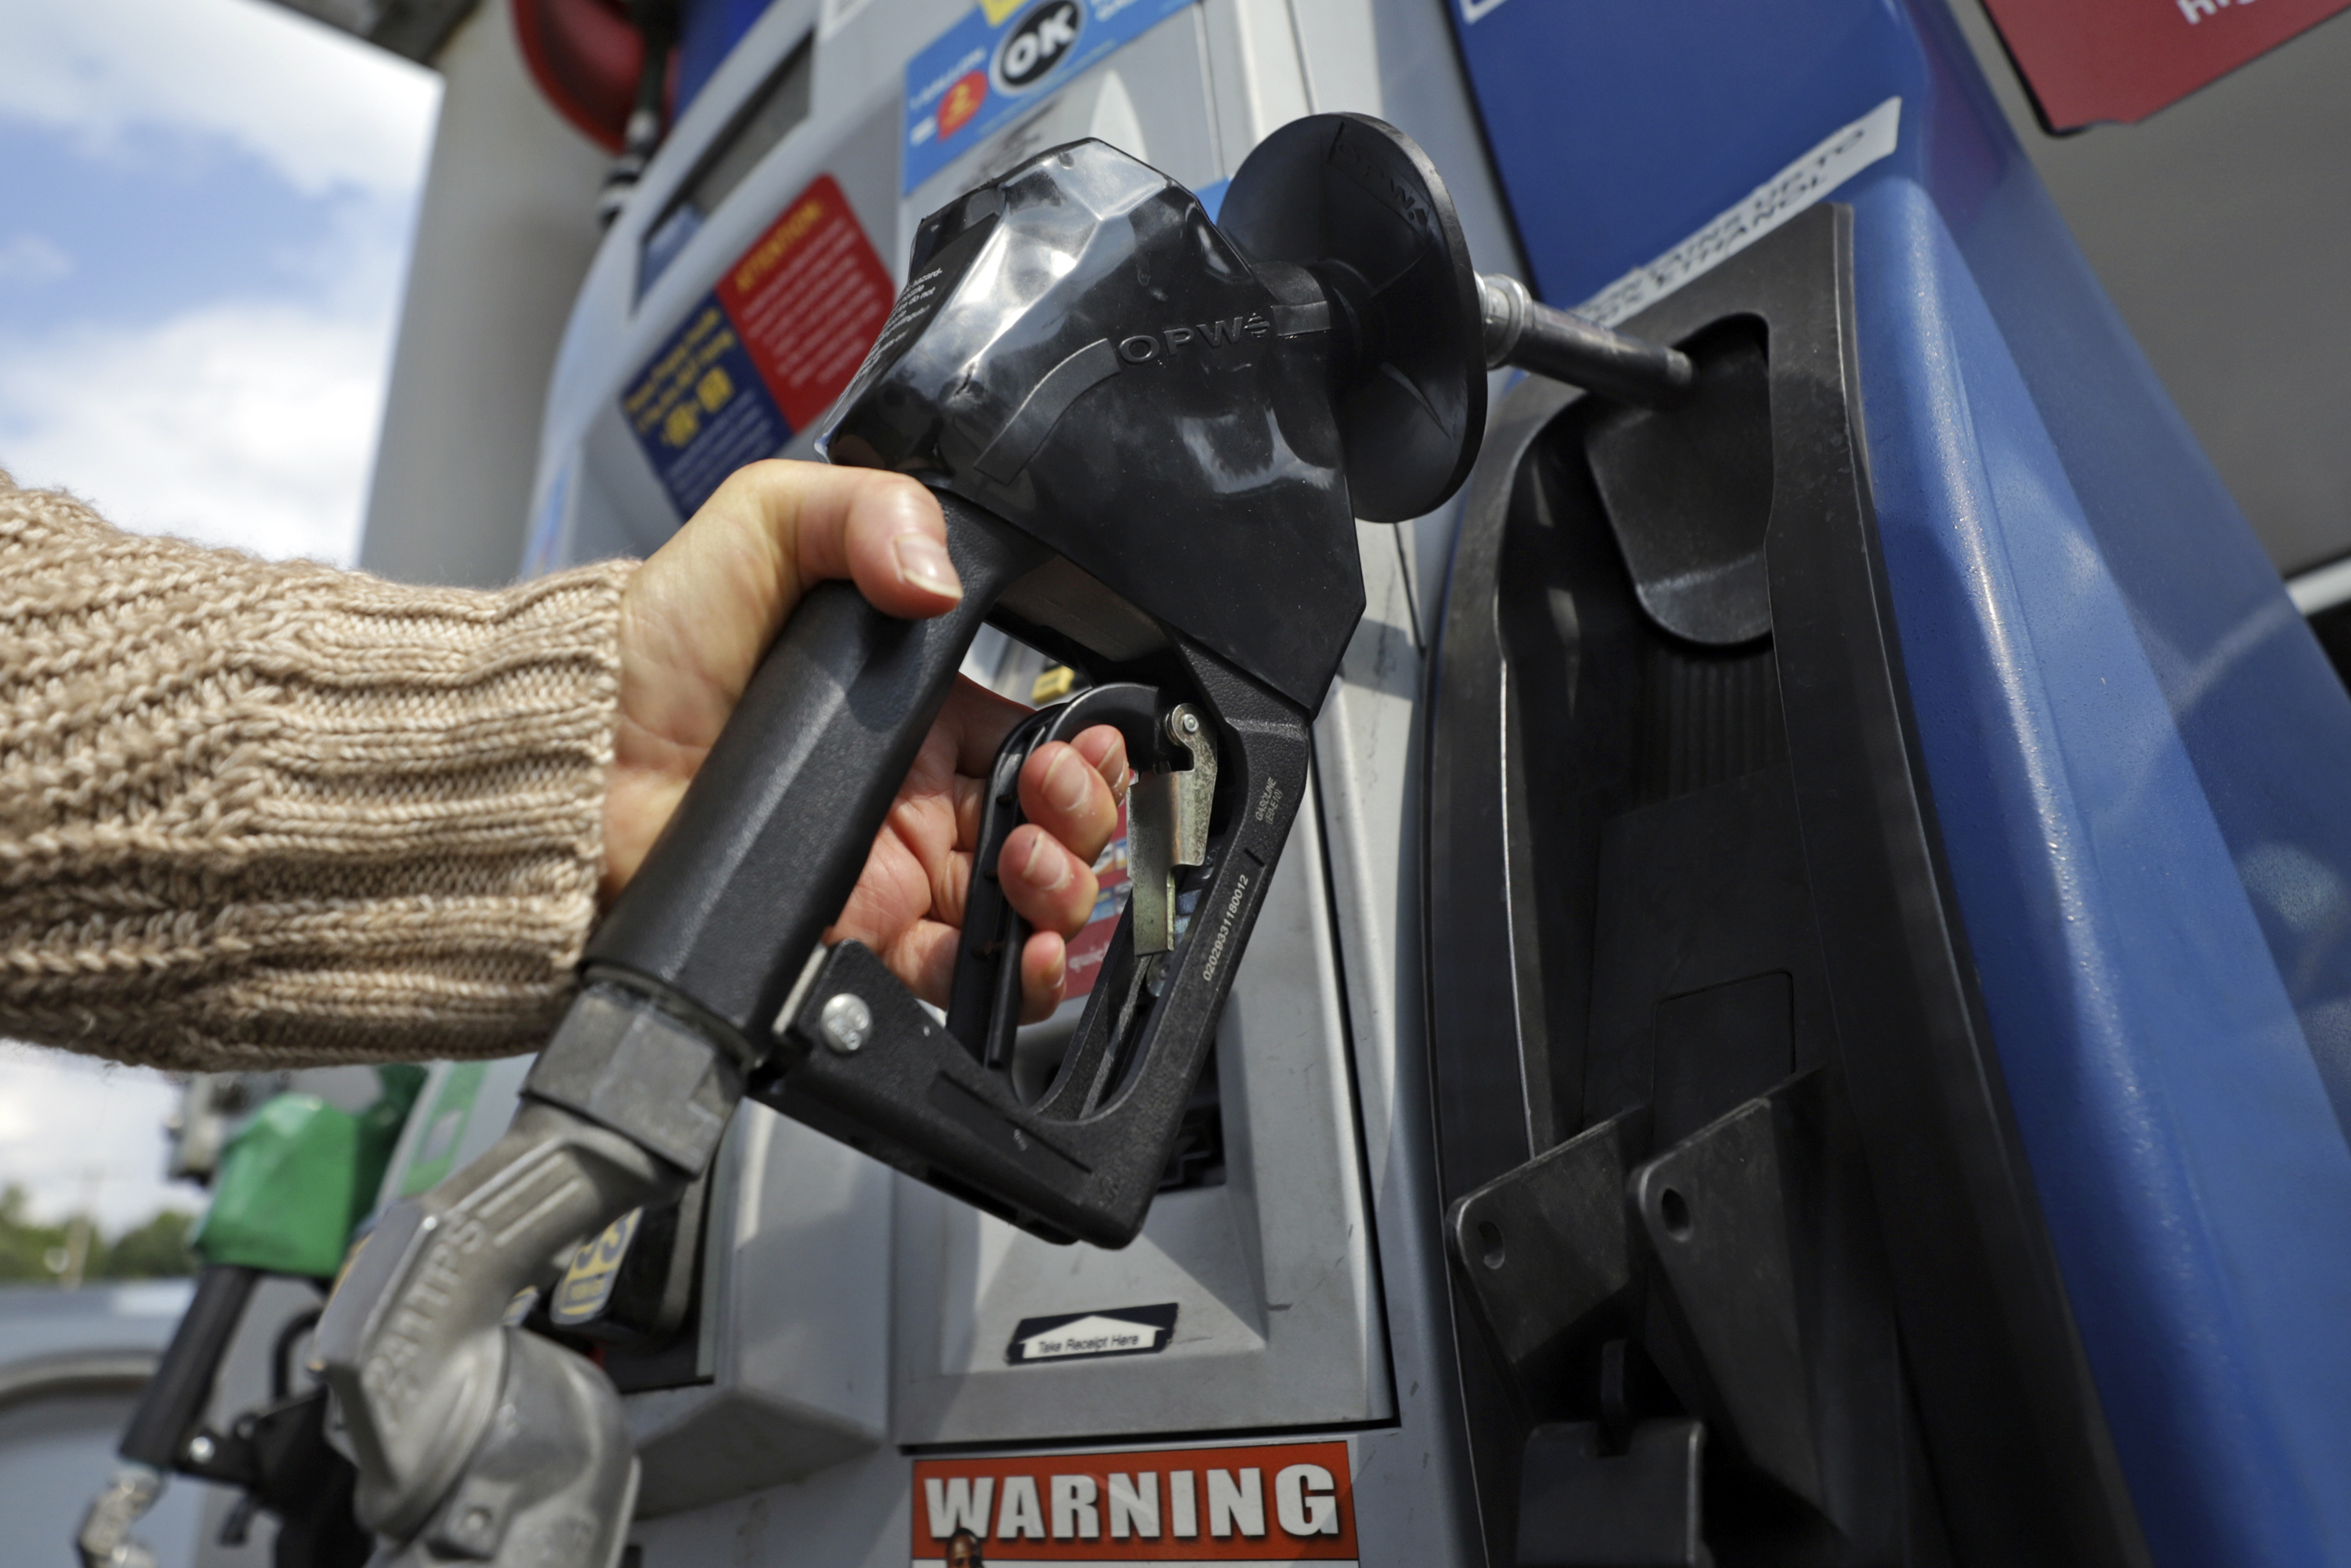 A woman pumps gas at a gas pump at a convenience store in Pittsburgh Monday, Sept. 16, 2019. Gas prices in the U.S. are already increasing.